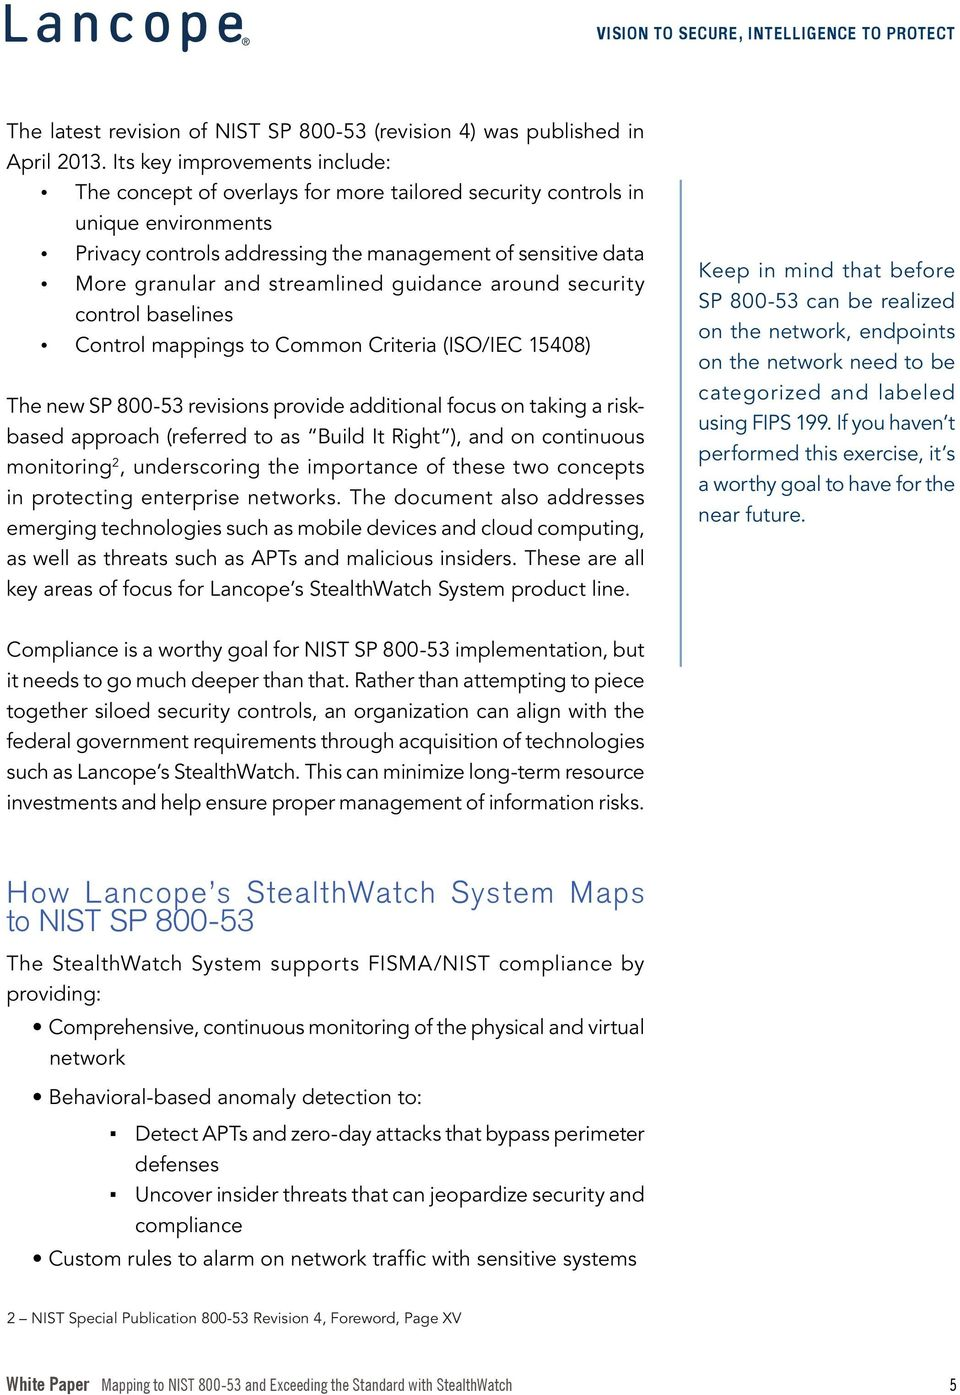 Mapping to NIST and Exceeding the Standard with StealthWatch - PDF